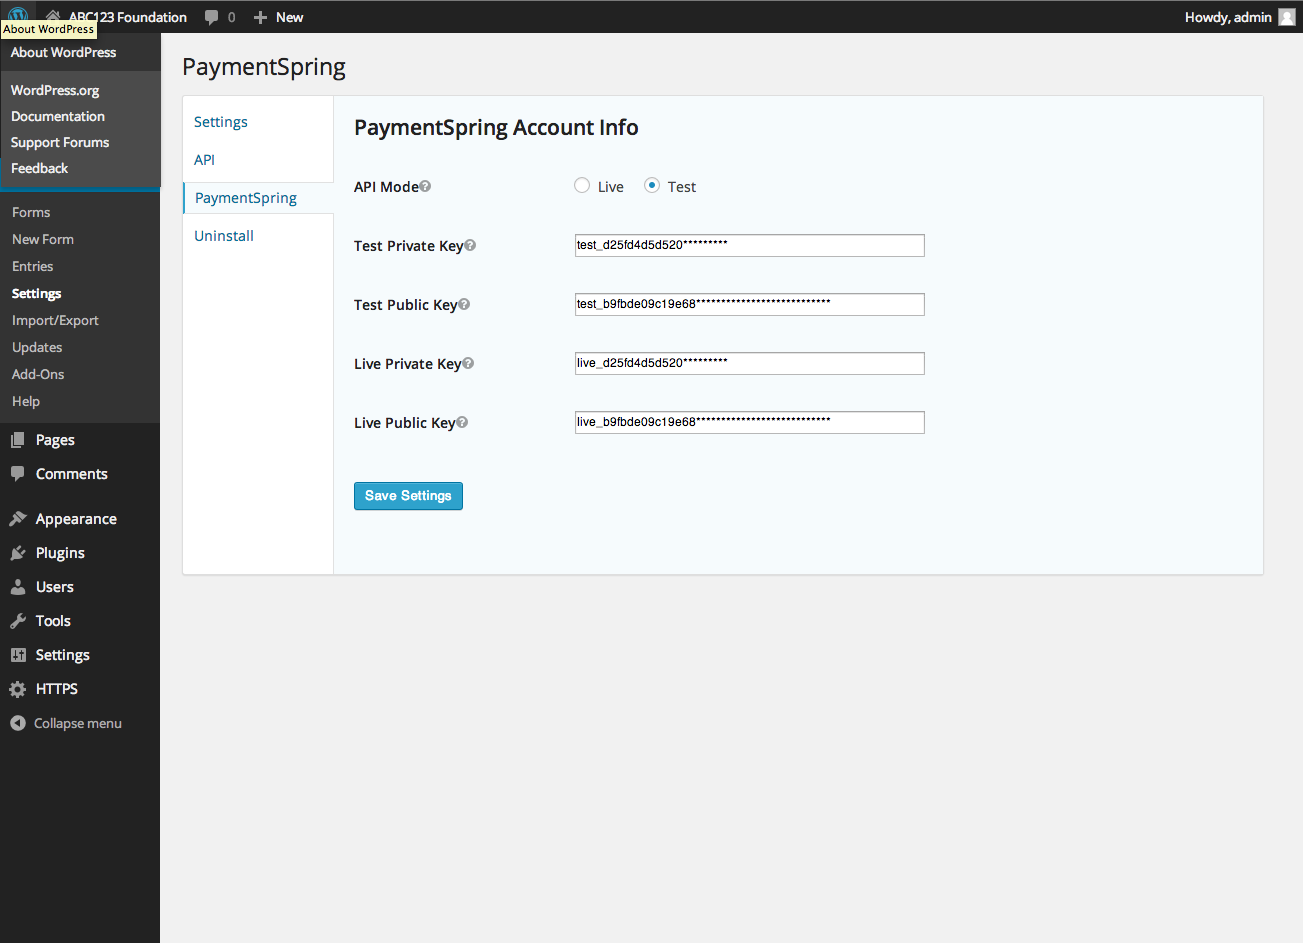 paymentspring-gravity-forms-add-on screenshot 1